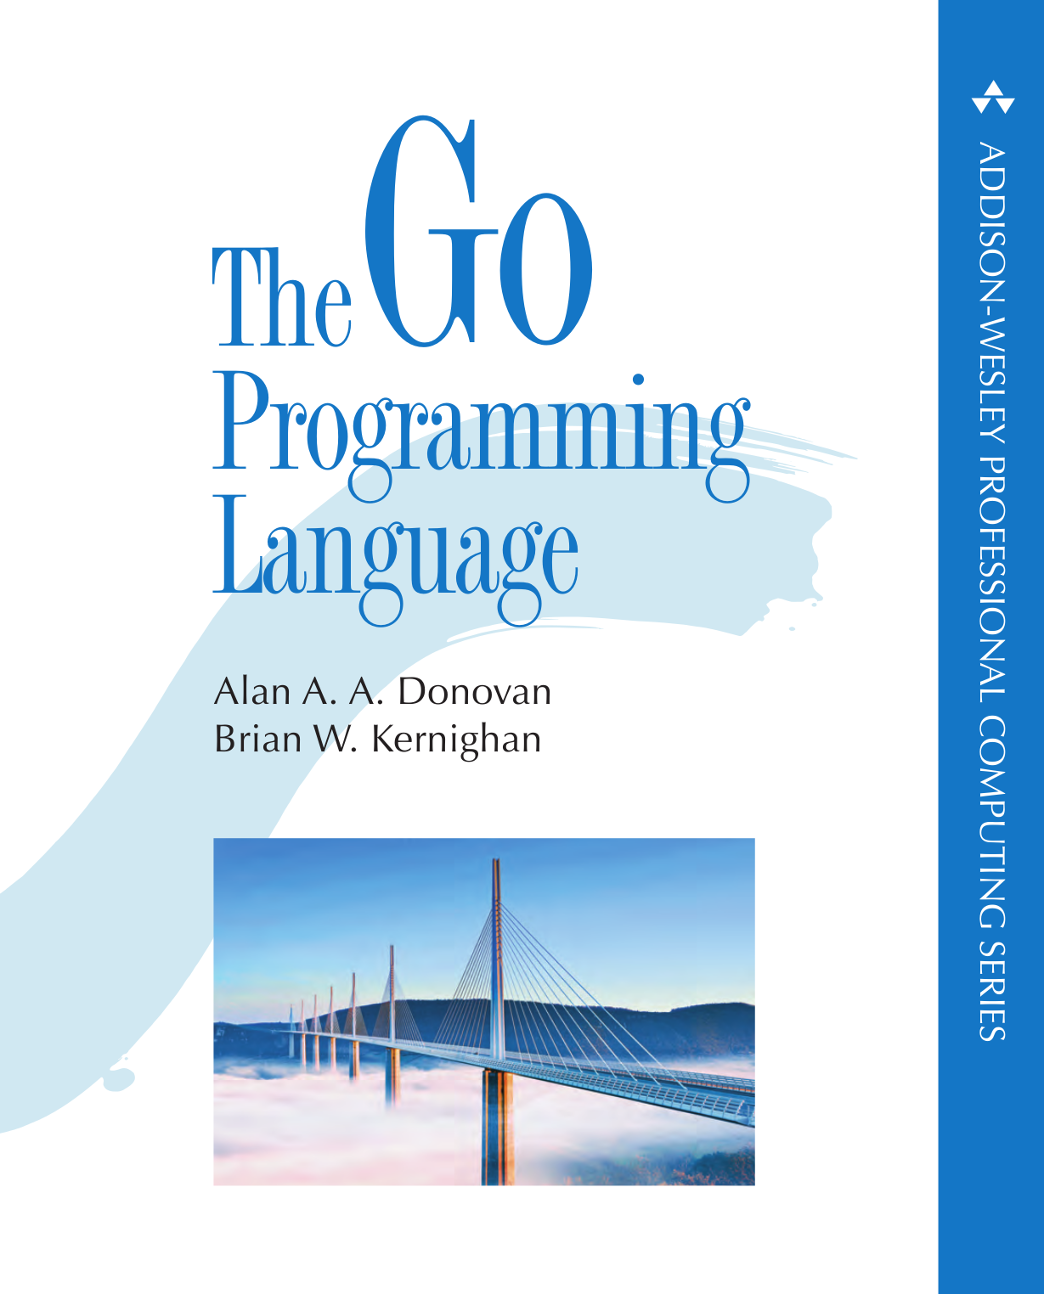 The Go Programming Language (Addison-Wesley Professional Computing Series)